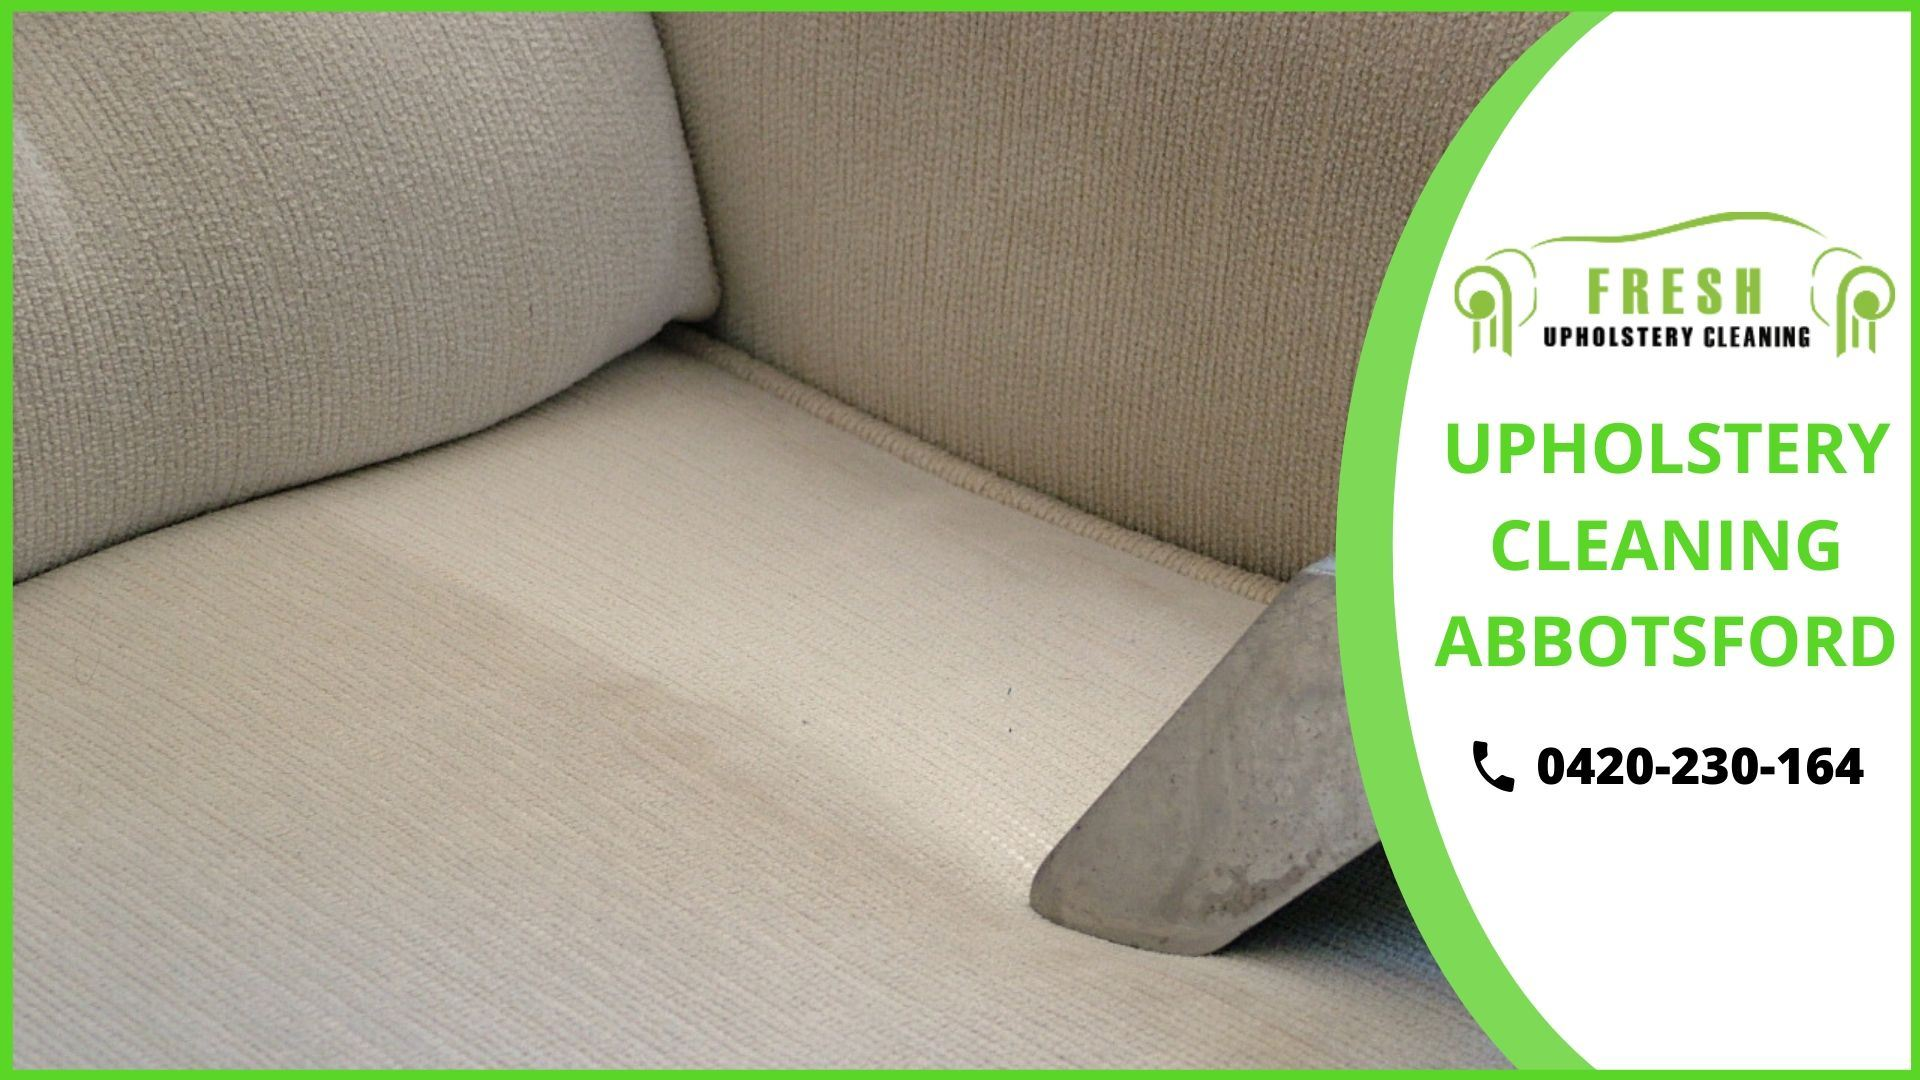 Local Upholstery Cleaners Abbotsford